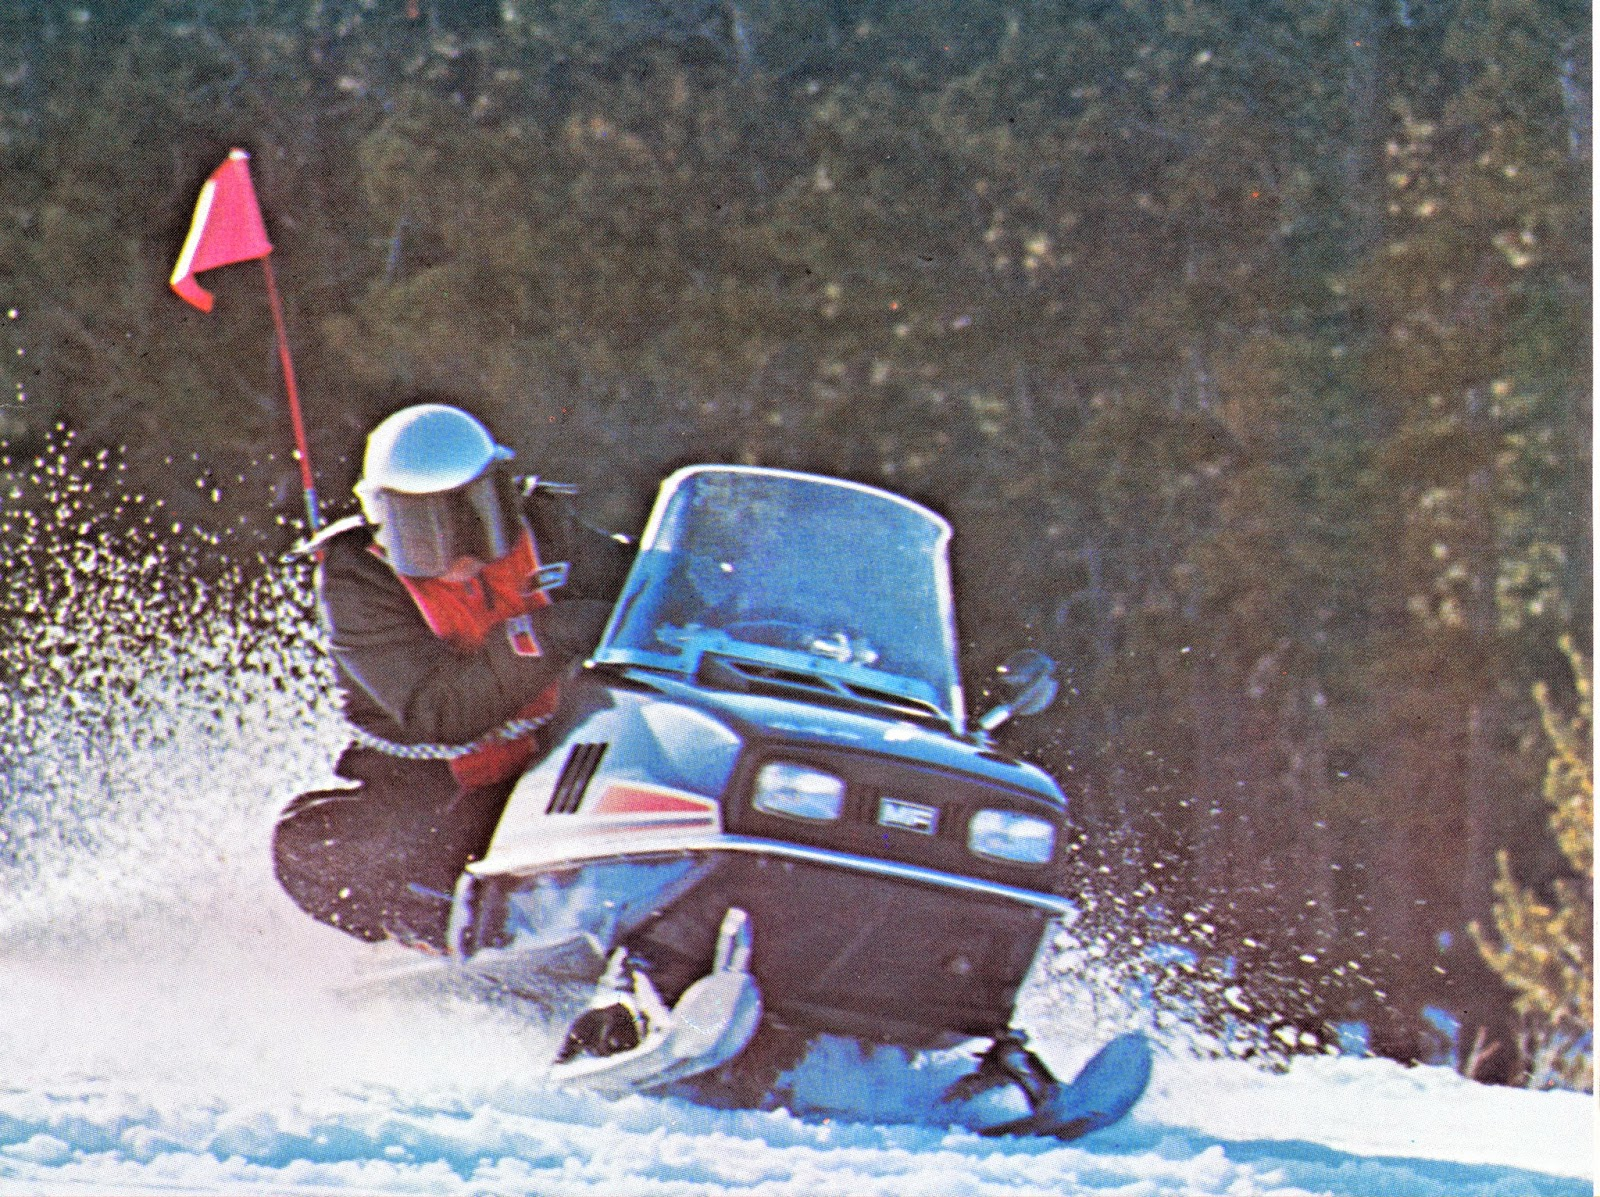 Ski whiz snowmobiles for sale - In 1974 Massey Ferguson Claimed Their Ski Whiz Was The Snowmobile For Hard Pack Or Powder With Superb Control They Had Thirteen Models Performance Class